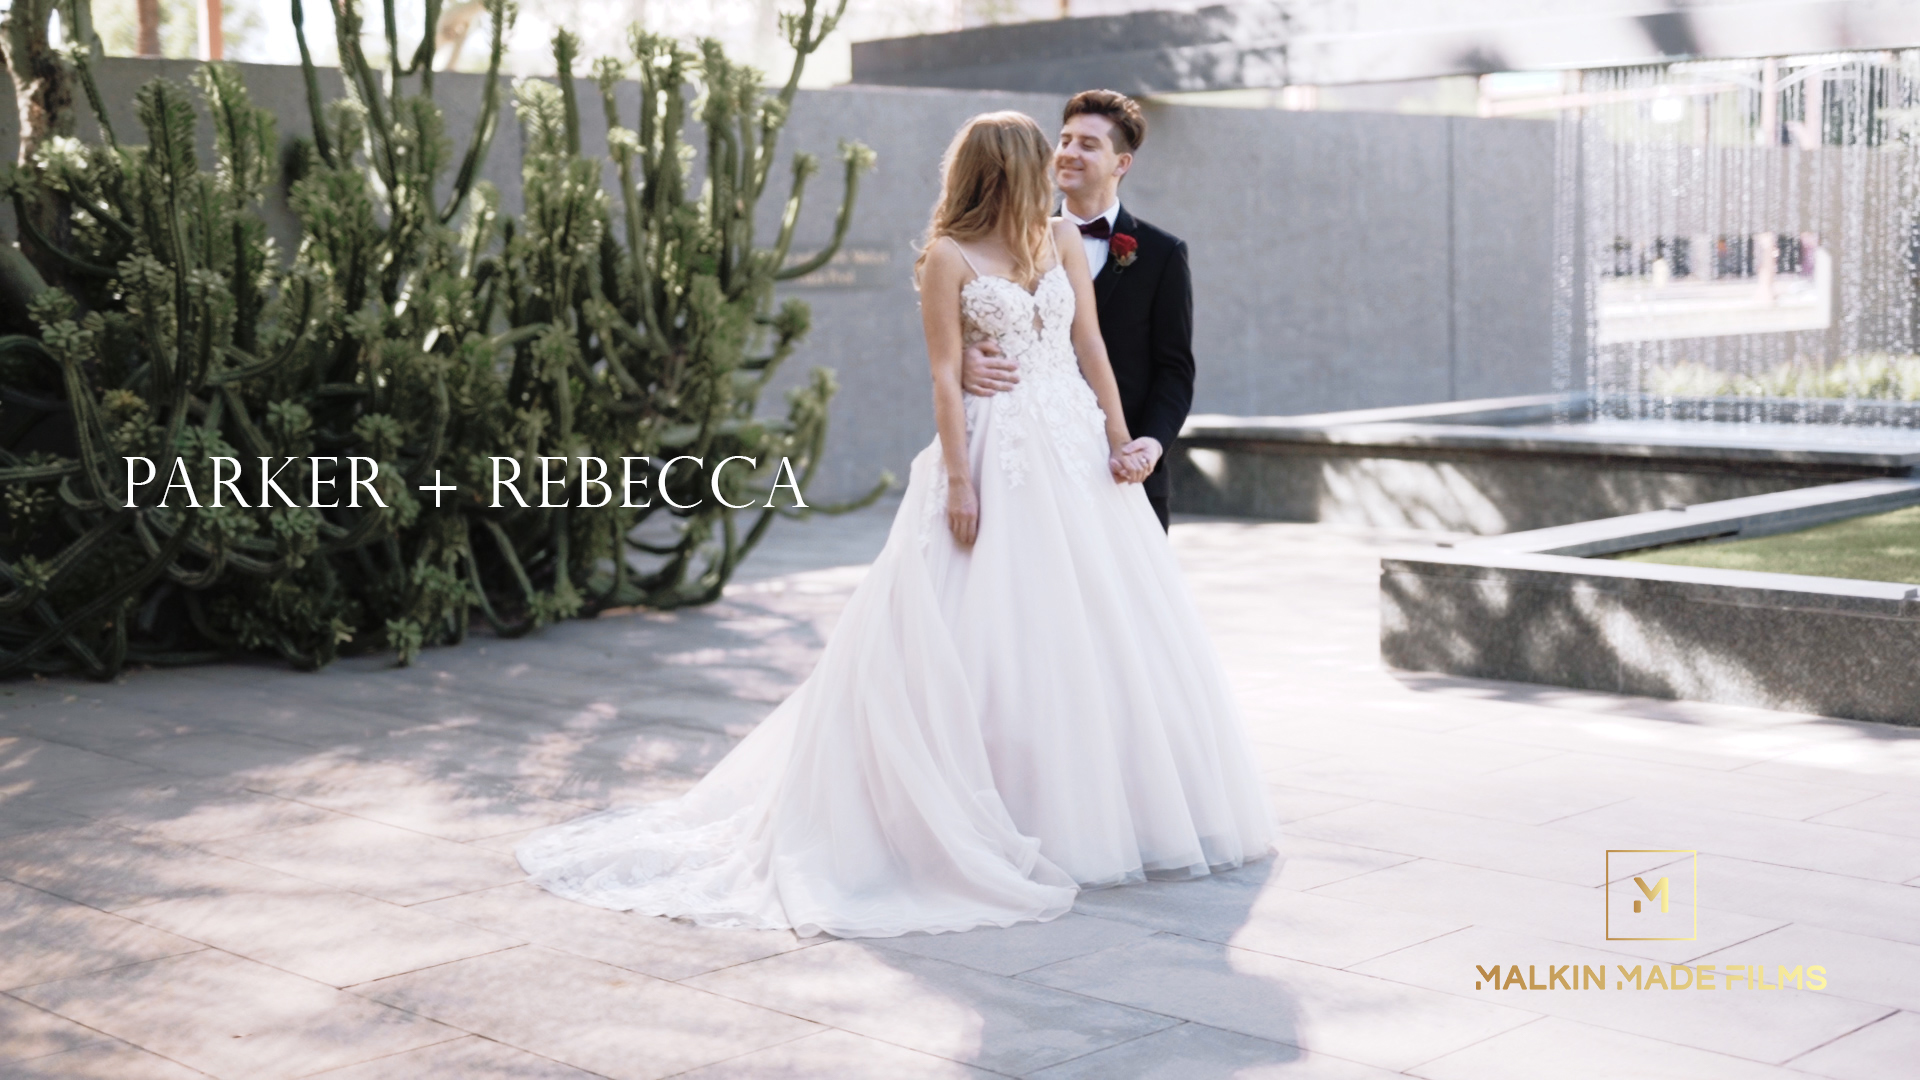 Parker + Rebecca | Phoenix, Arizona | The Phoenix Art Museum